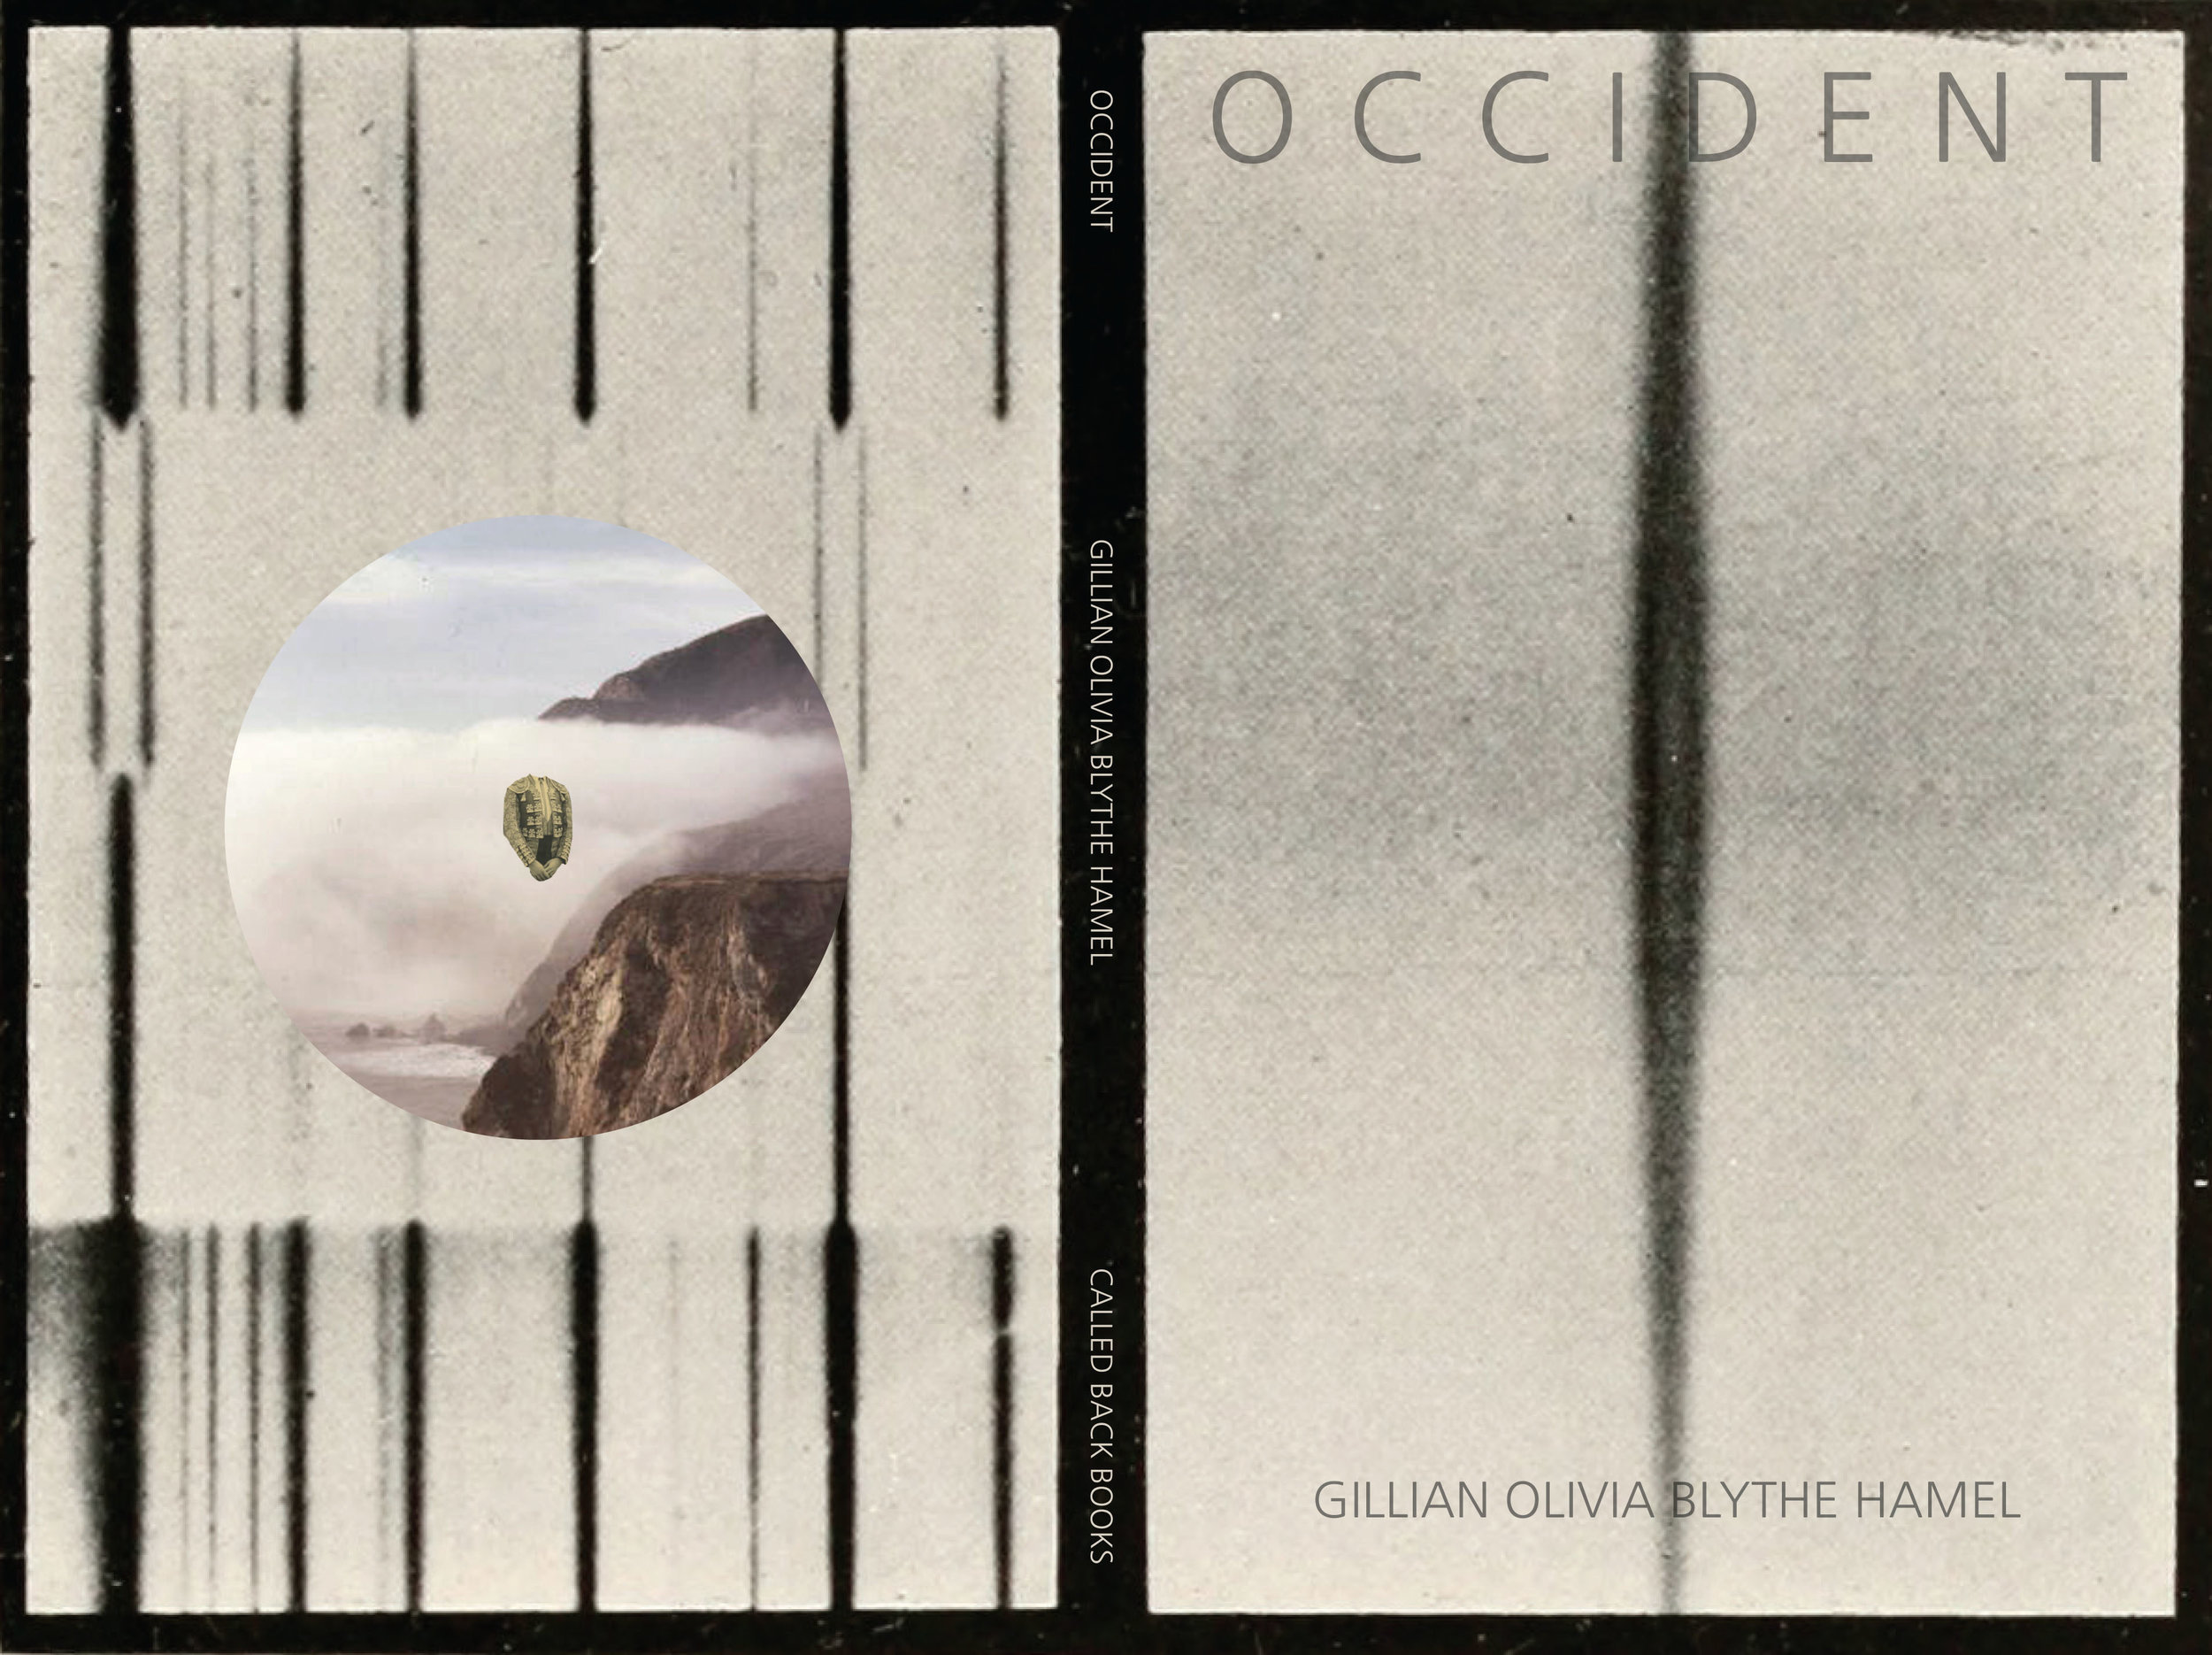 """Occident"" Book  by Gillian Olivia Blythe Hamel PA102"